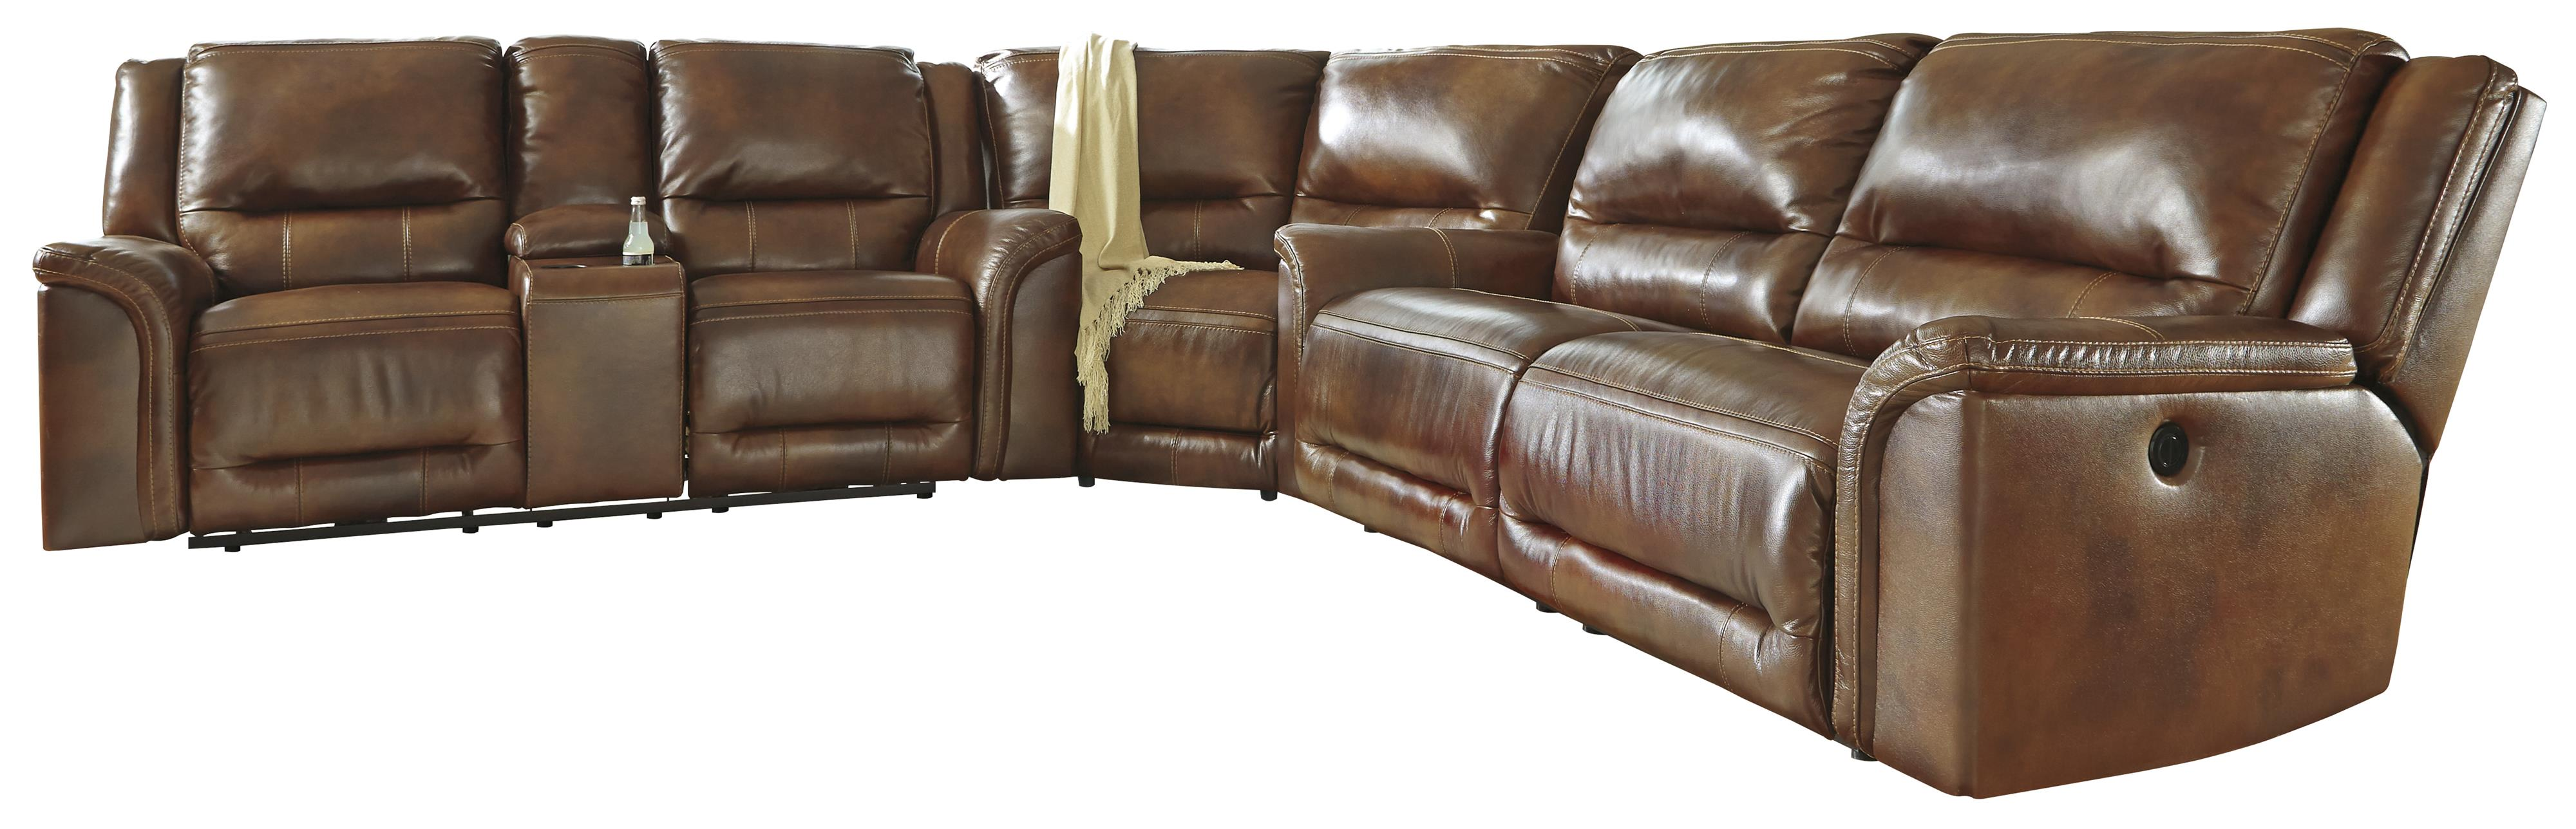 furniture chaise big of also leather sofa fabric bedroom alluring reclining costco sectional lots